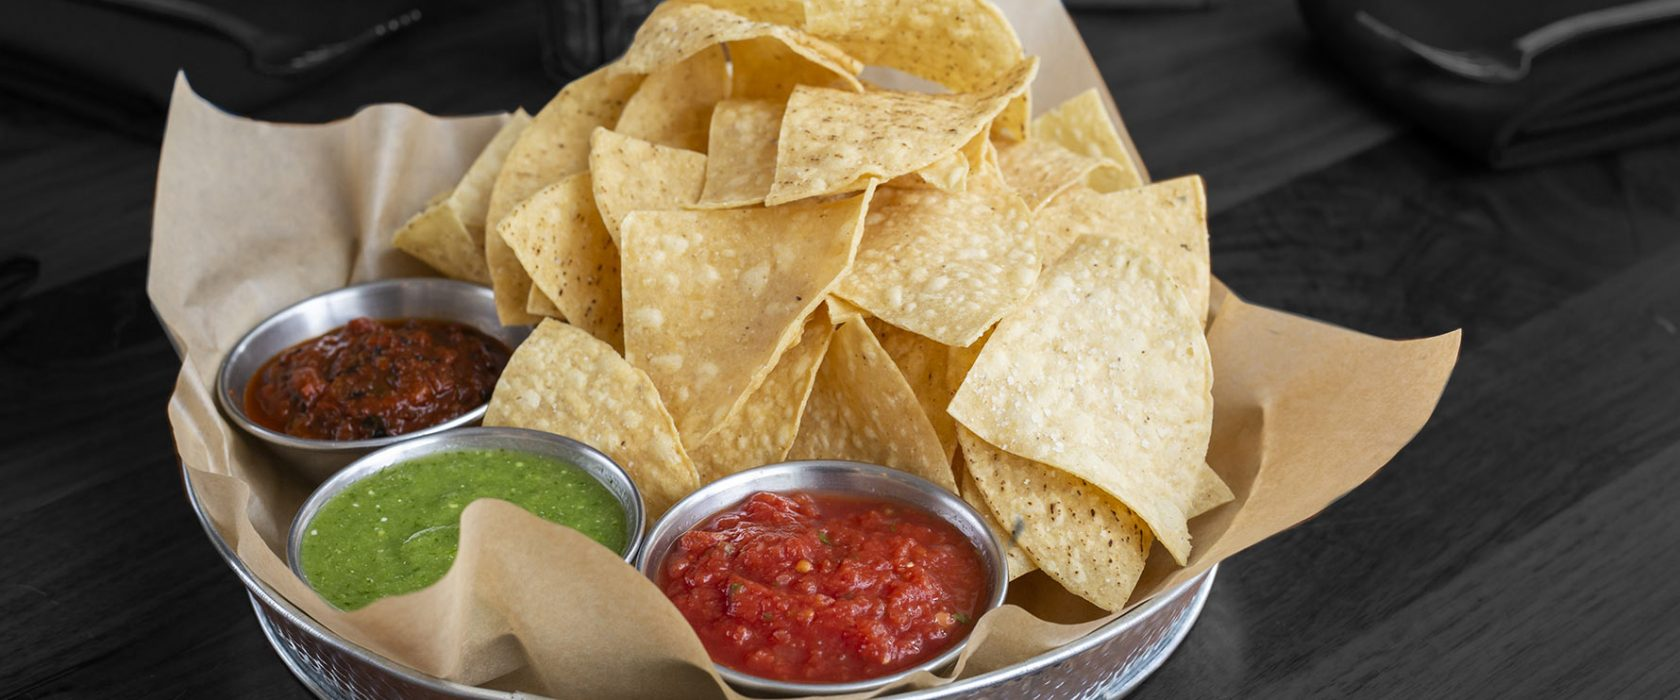 Metal bowl filled with tortilla chips and three salsas from mild to medium to hot.